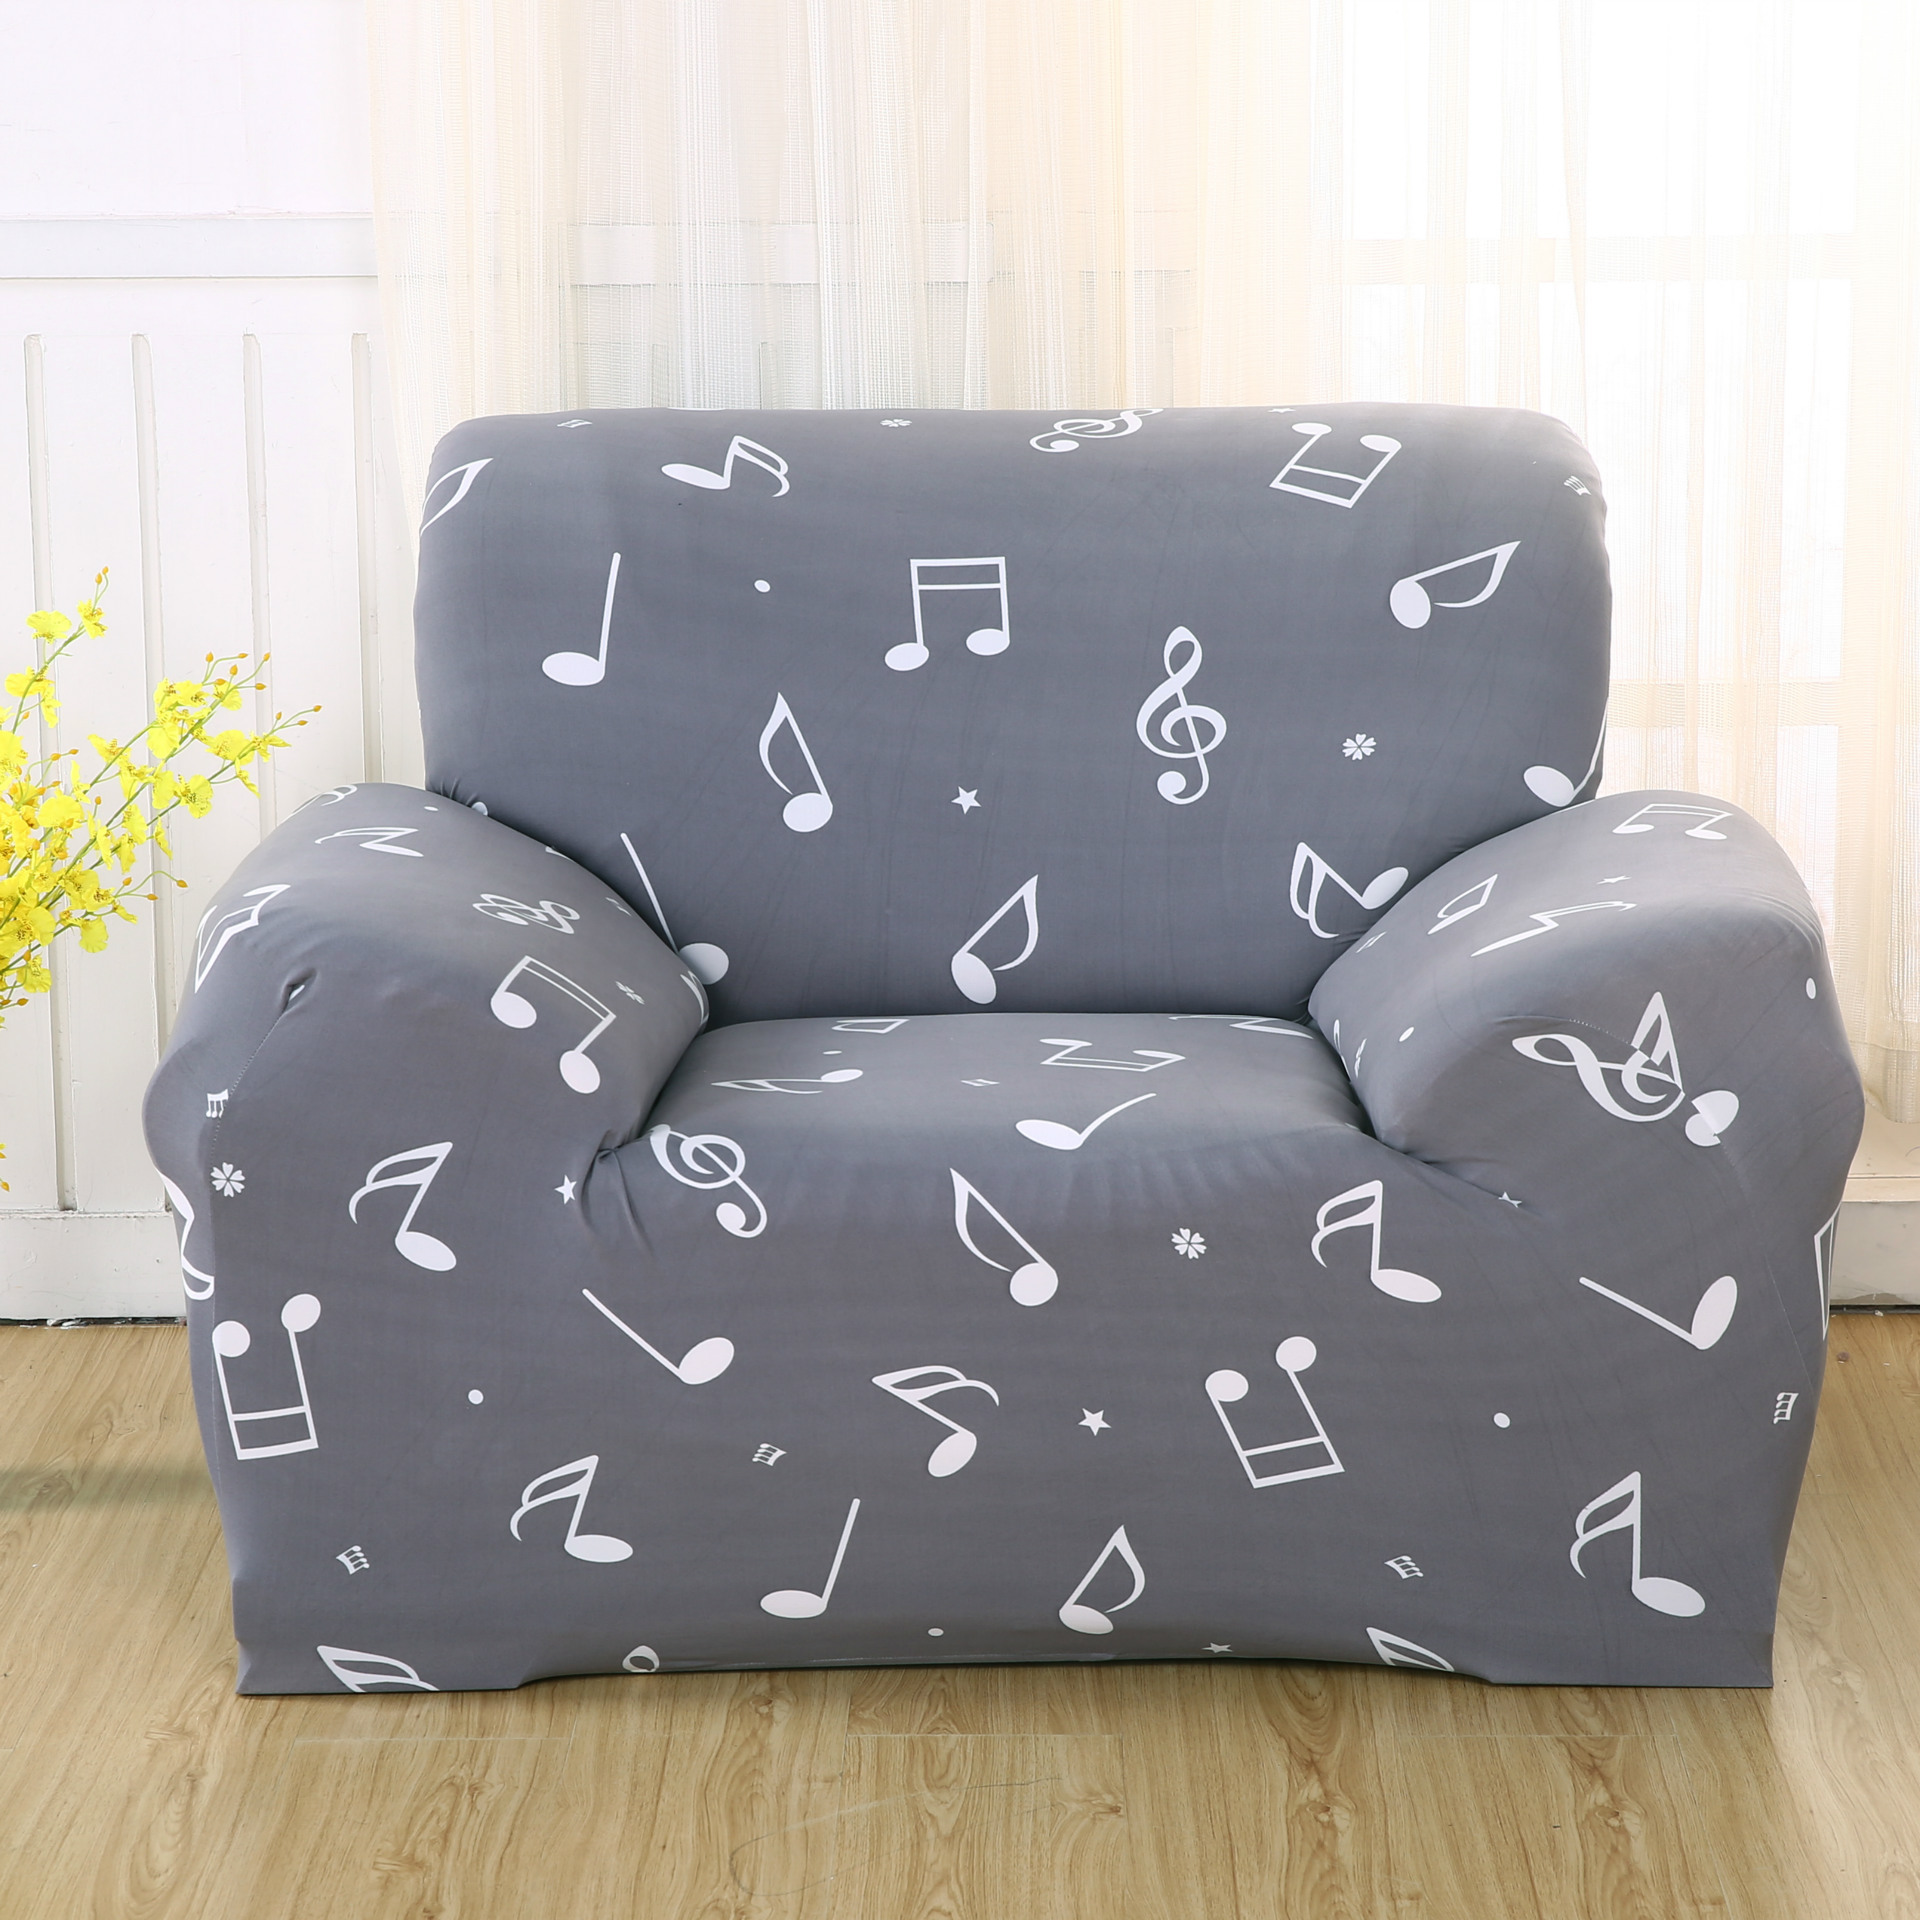 Modern Music Drawing Room Decorate Anti Mite Sofa Cover Big Elasticity Flexible  Couch Cover Loveseat Machine